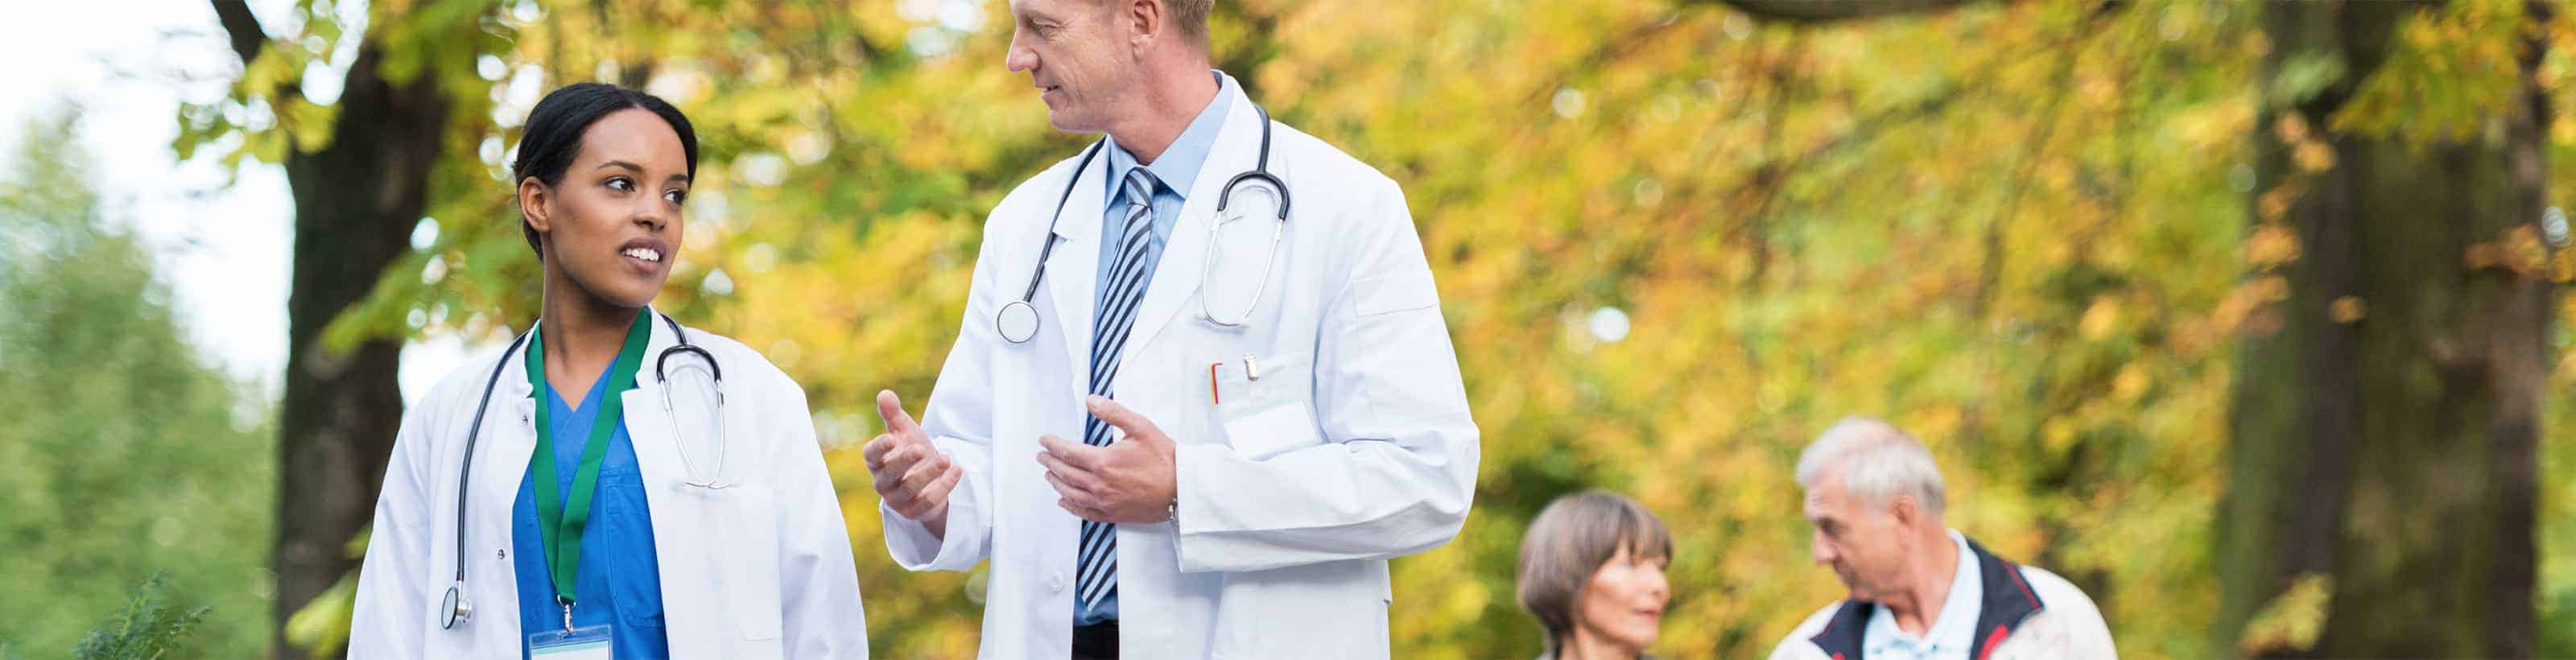 Photo of medical professionals walking through a park